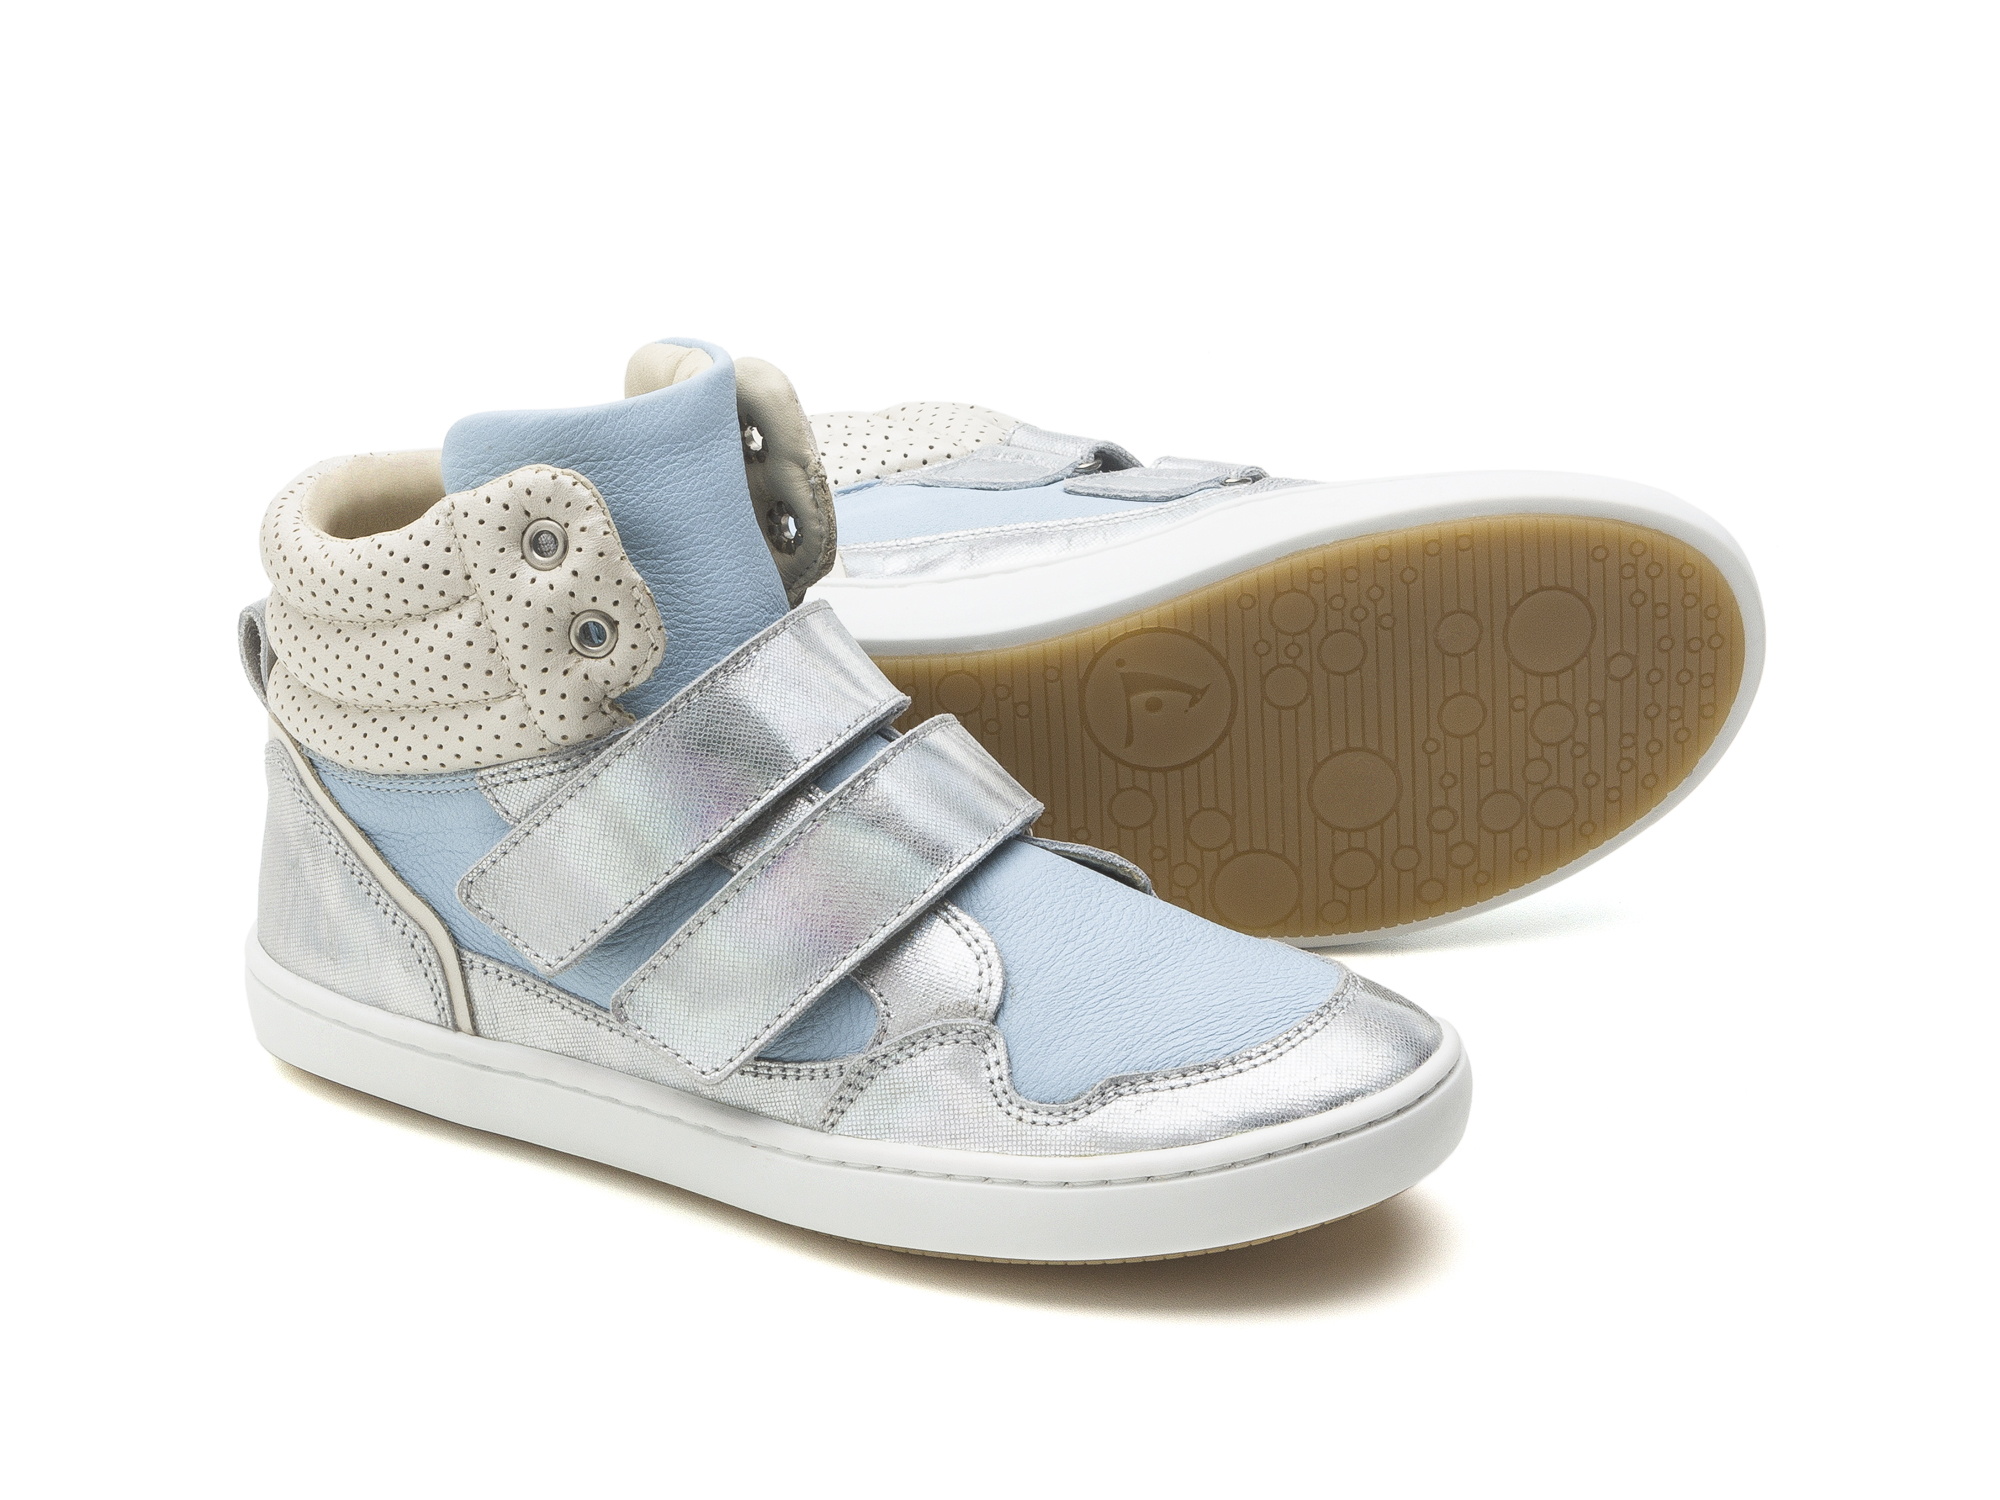 Bota Edge Sea Sparkle/ Baby Blue Junior 4 à 8 anos - 1